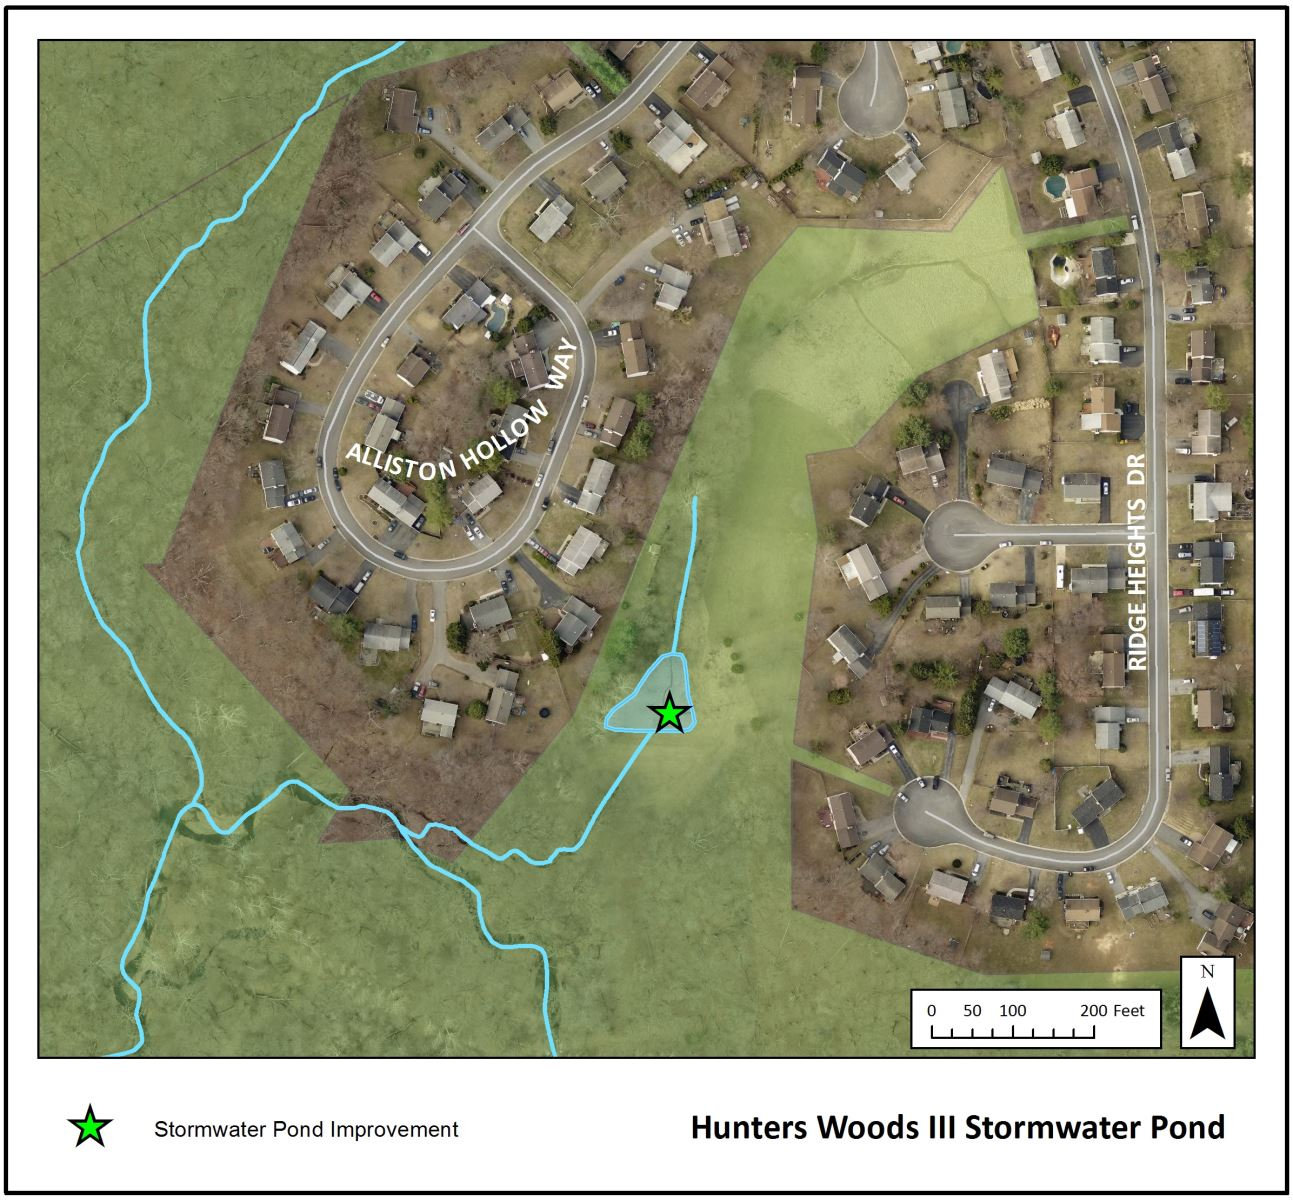 Ponds department of environmental protection montgomery county md - Hunters Woods Iii Stormwater Pond Map